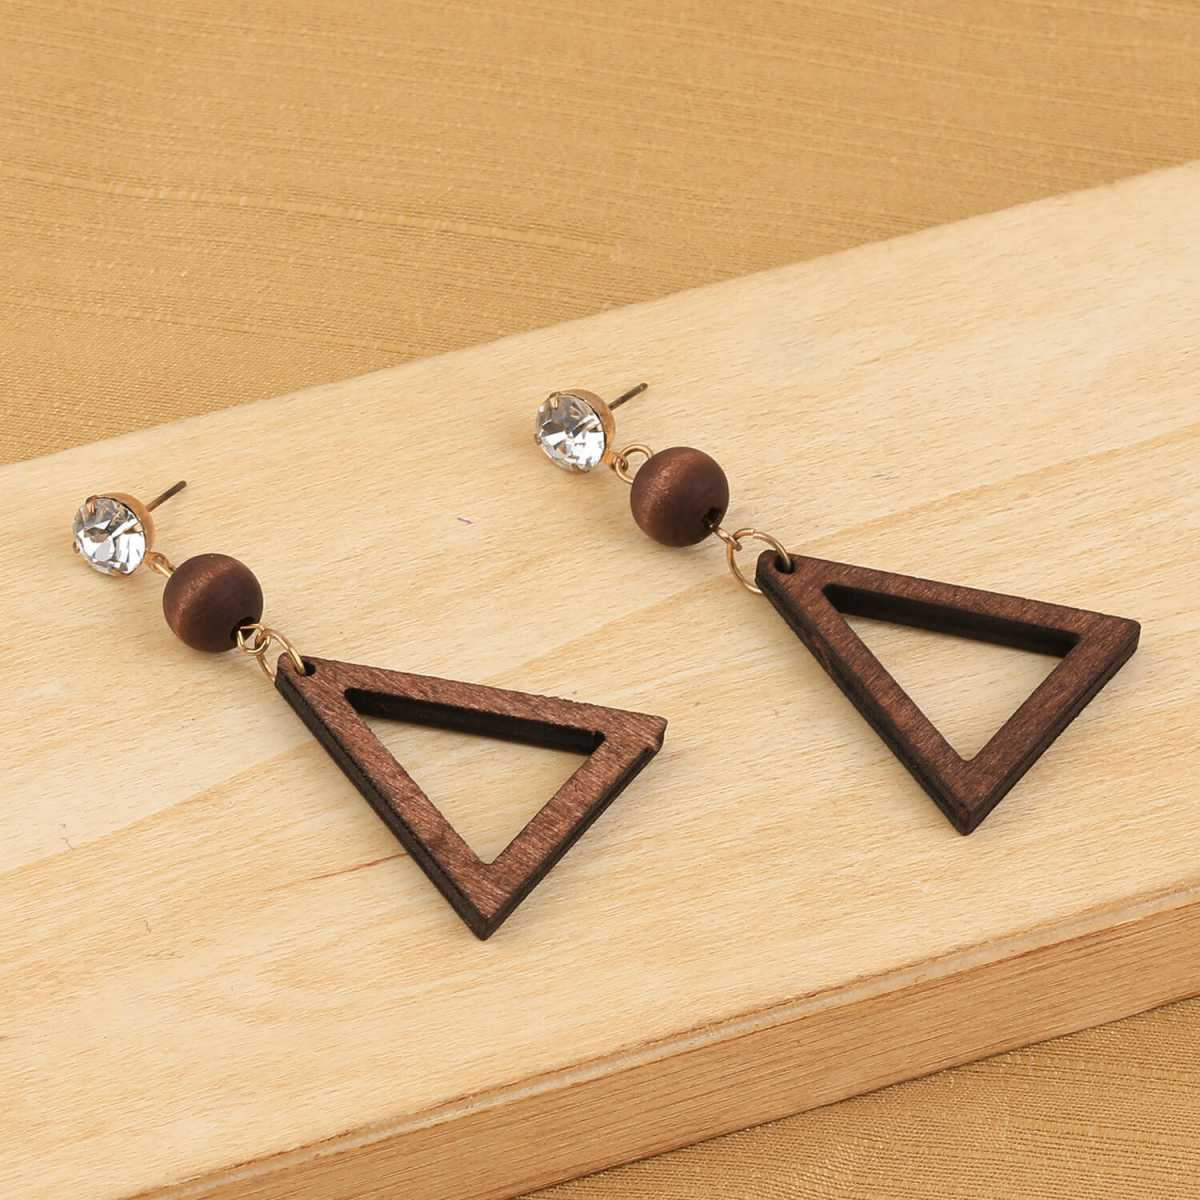 SILVER SHINE Elegant Dangler Brown Wooden Fashion Earrings For Girls and Women